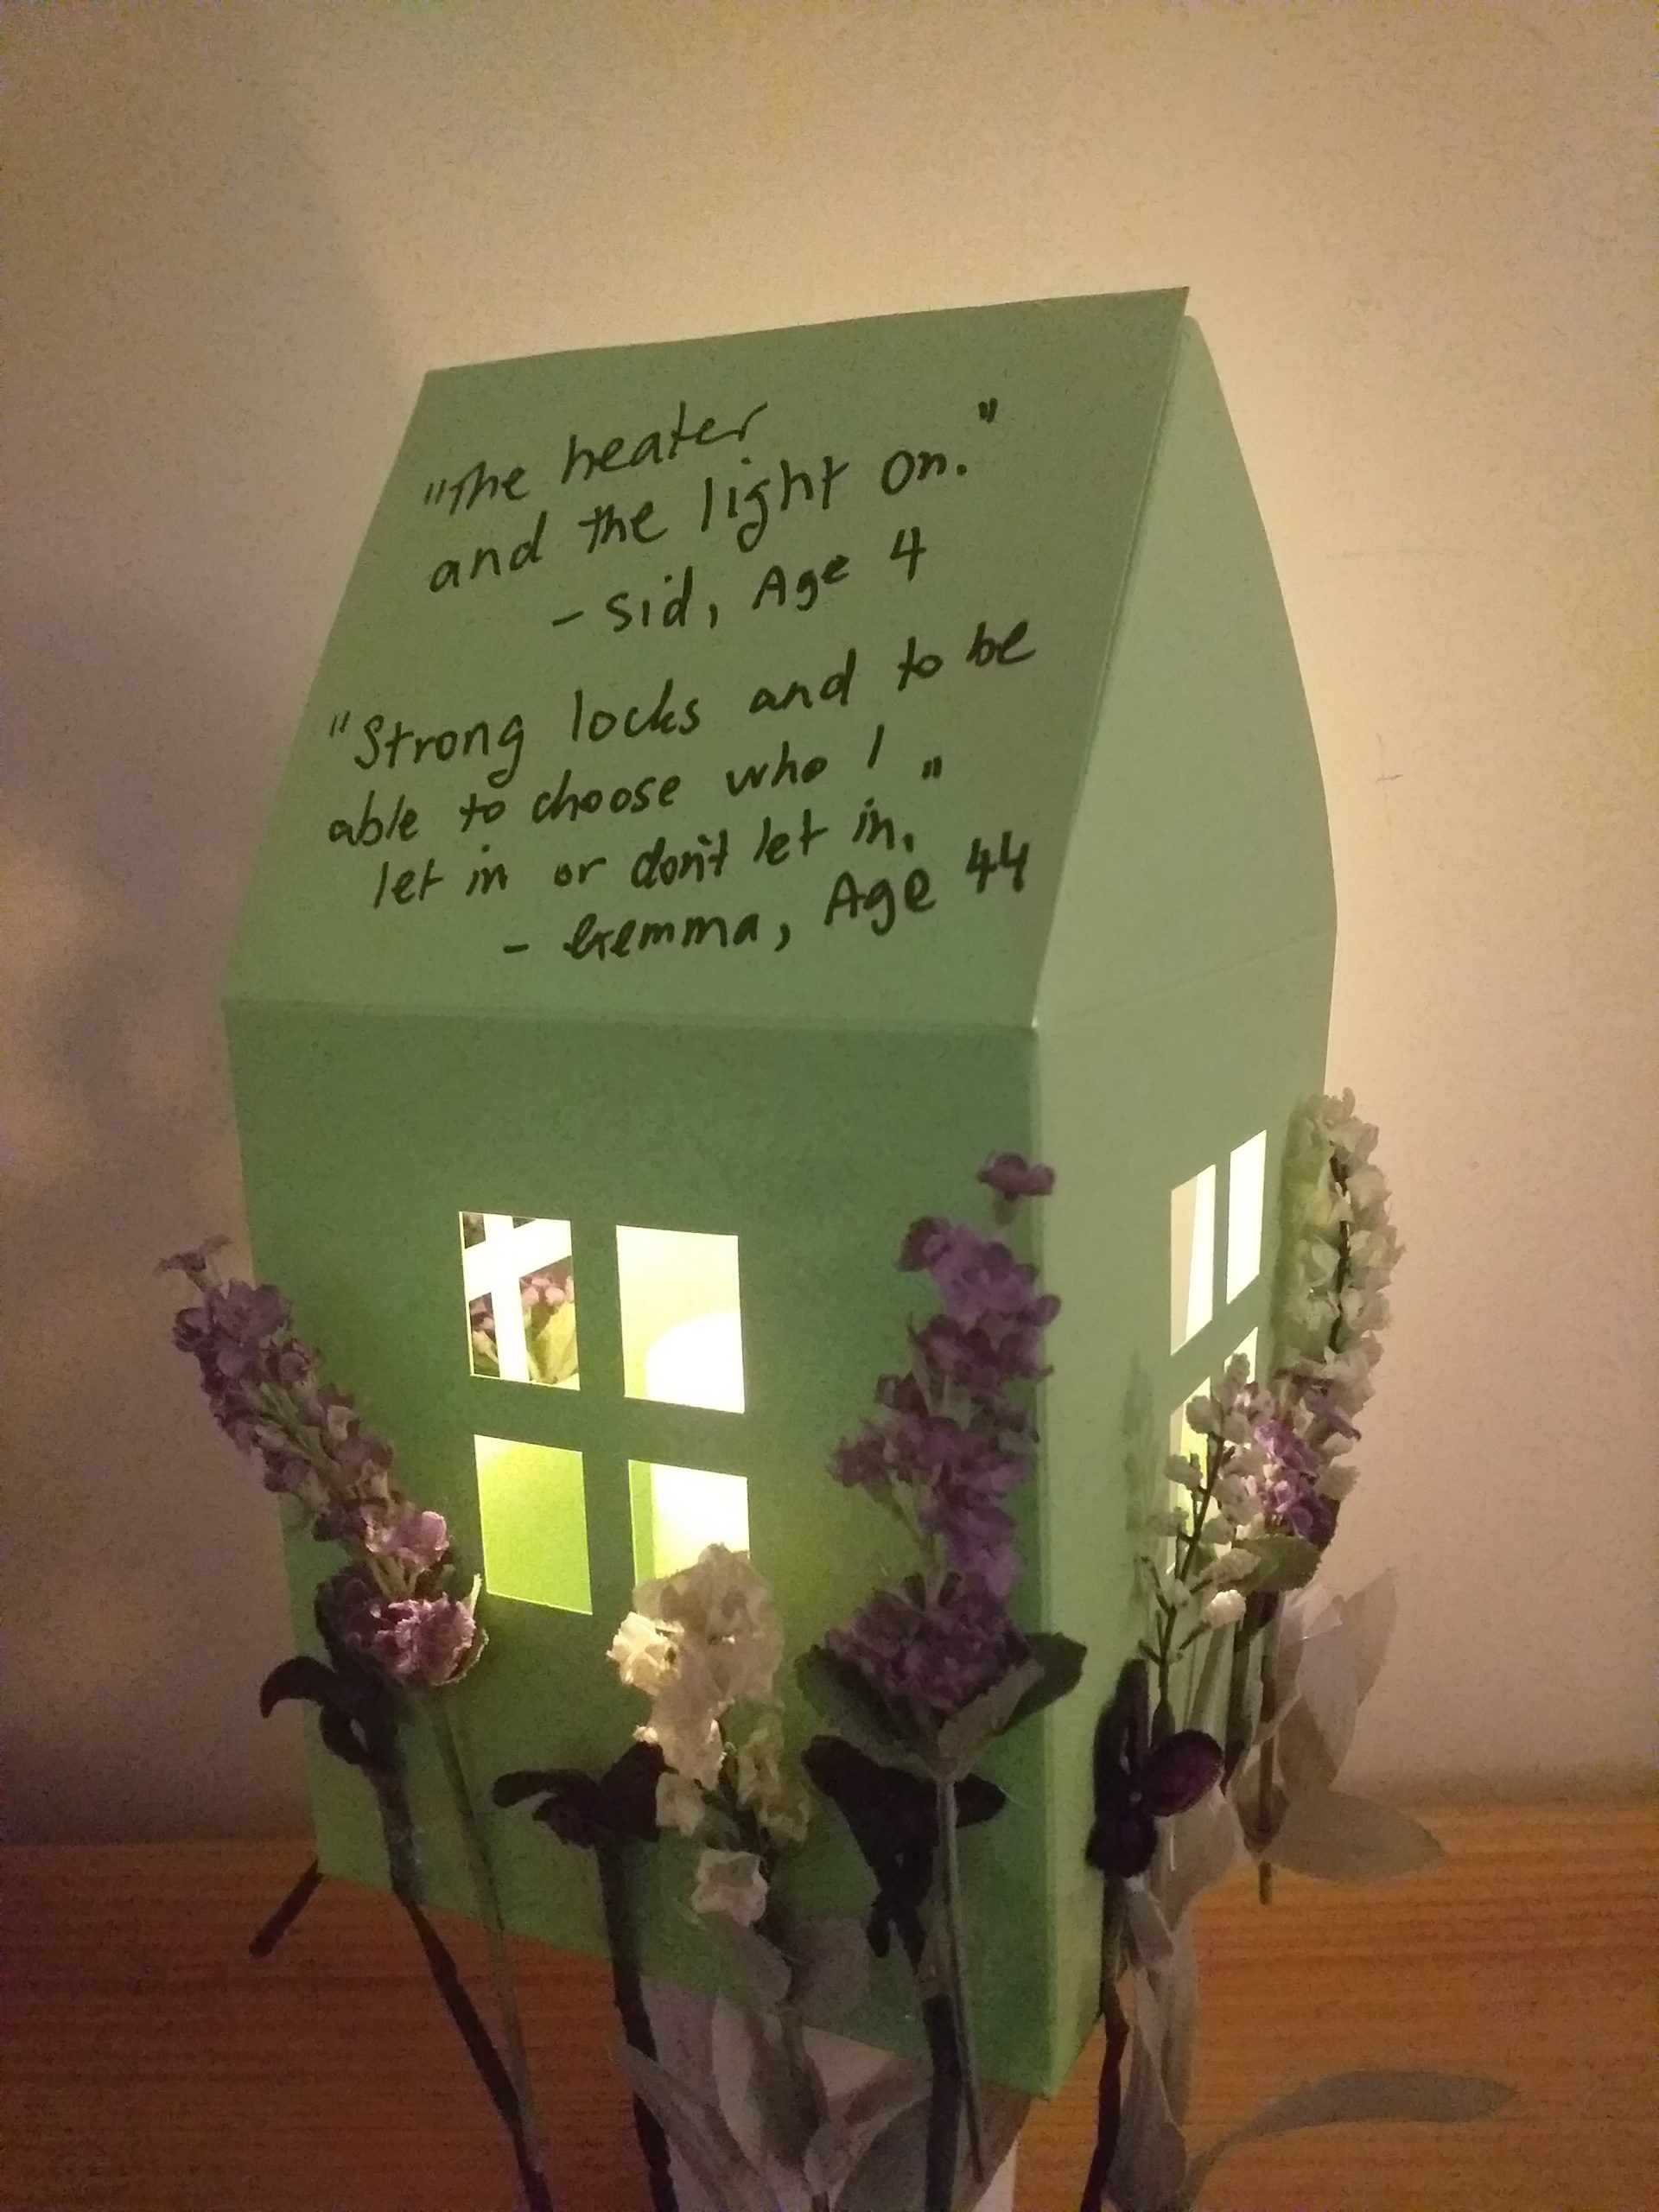 A green Warm Safe Home with flowers